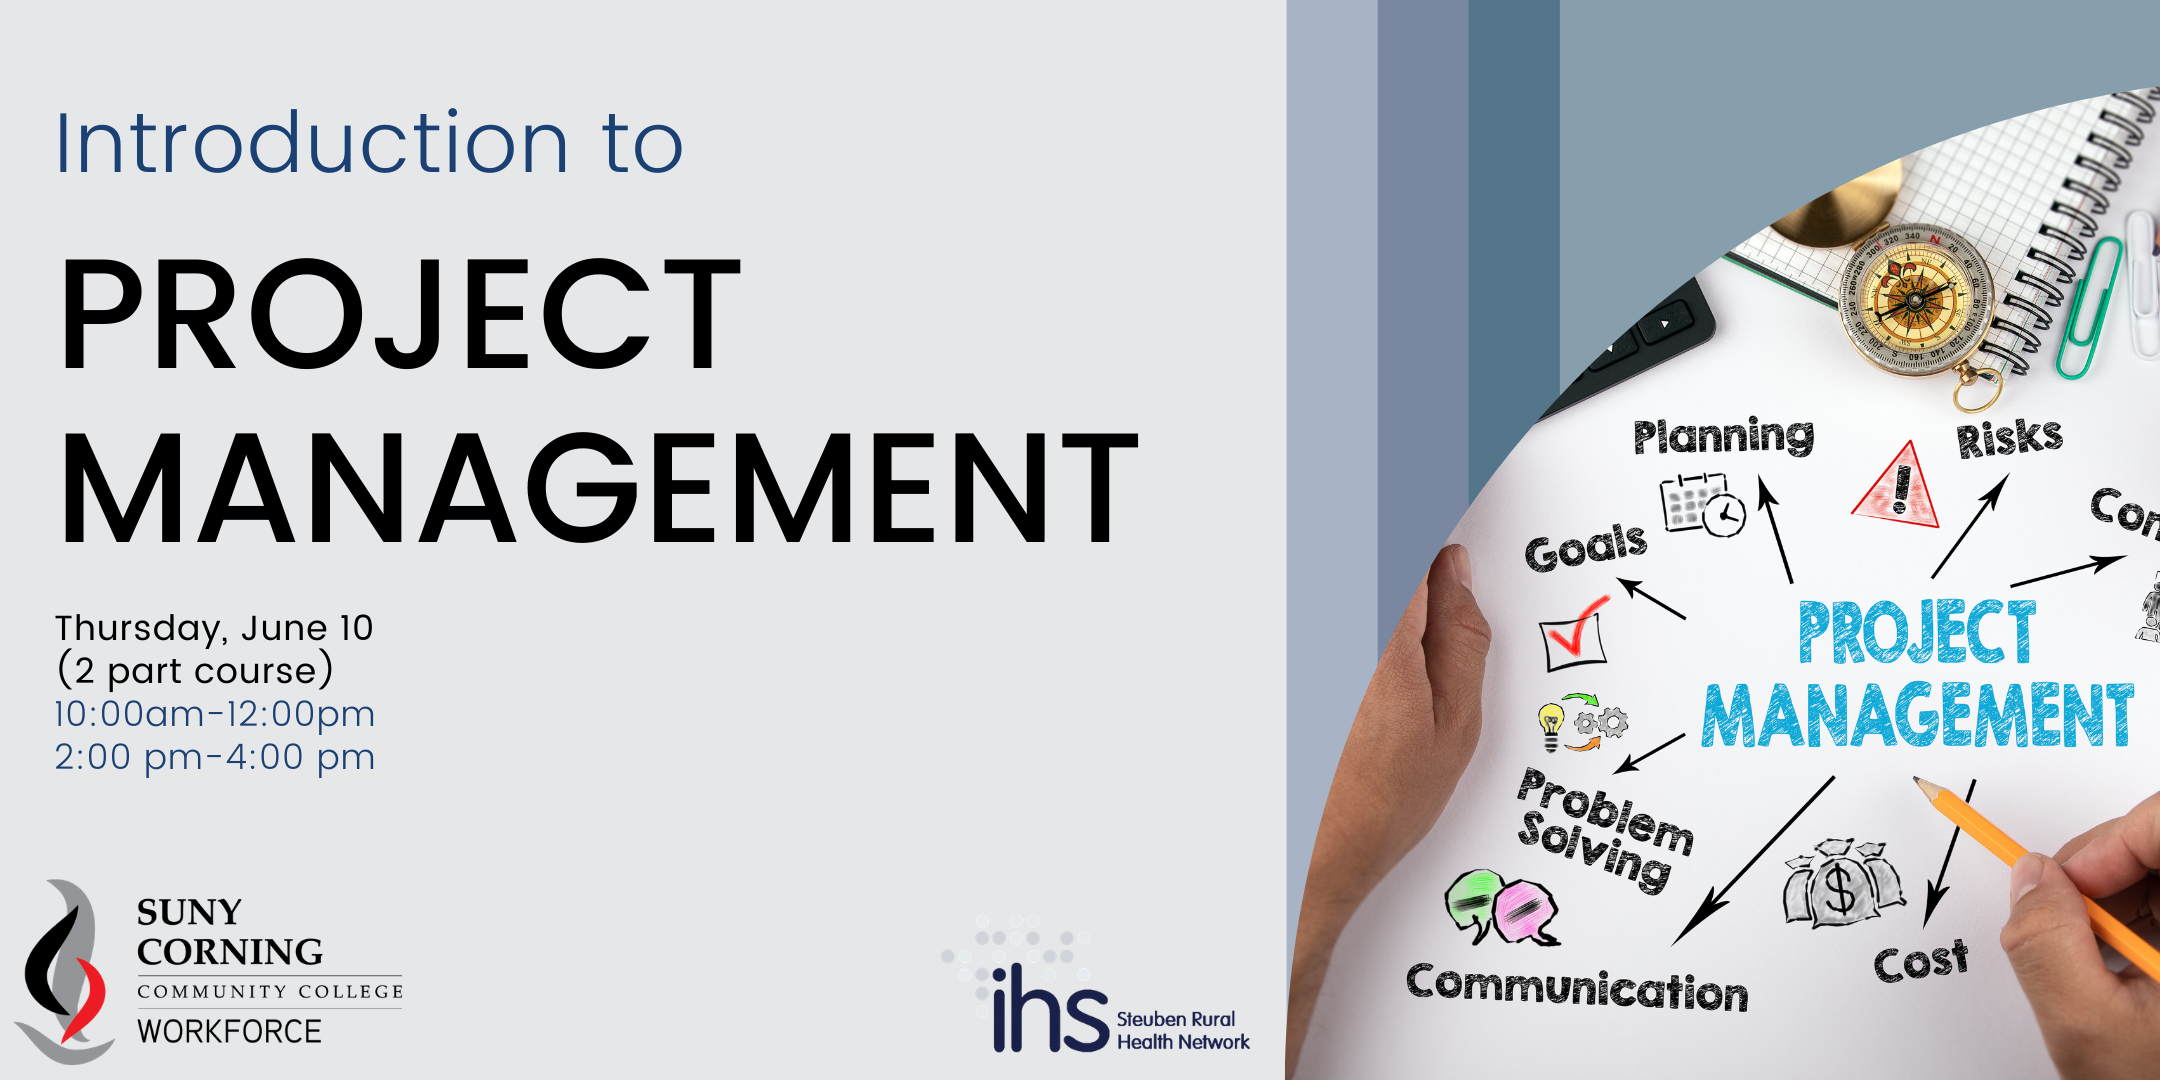 Project Management Eventbrite Cover 1 - IHS Events